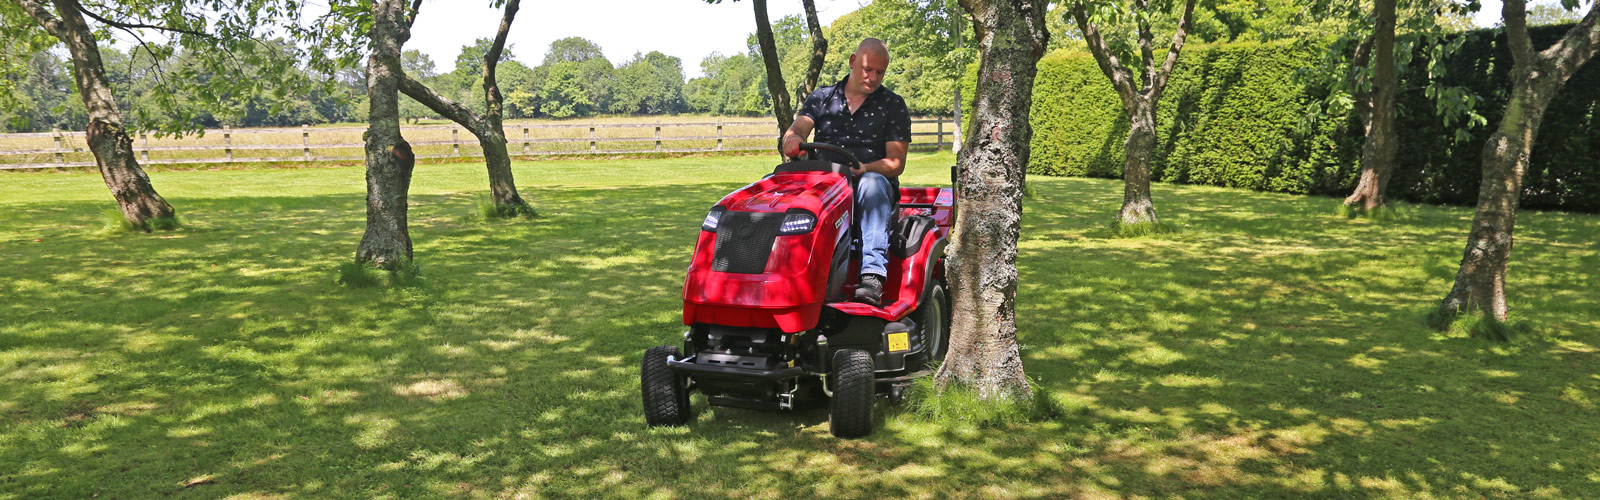 Countax C Series lawn garden tractor riding mower cutting and collecting grass around trees